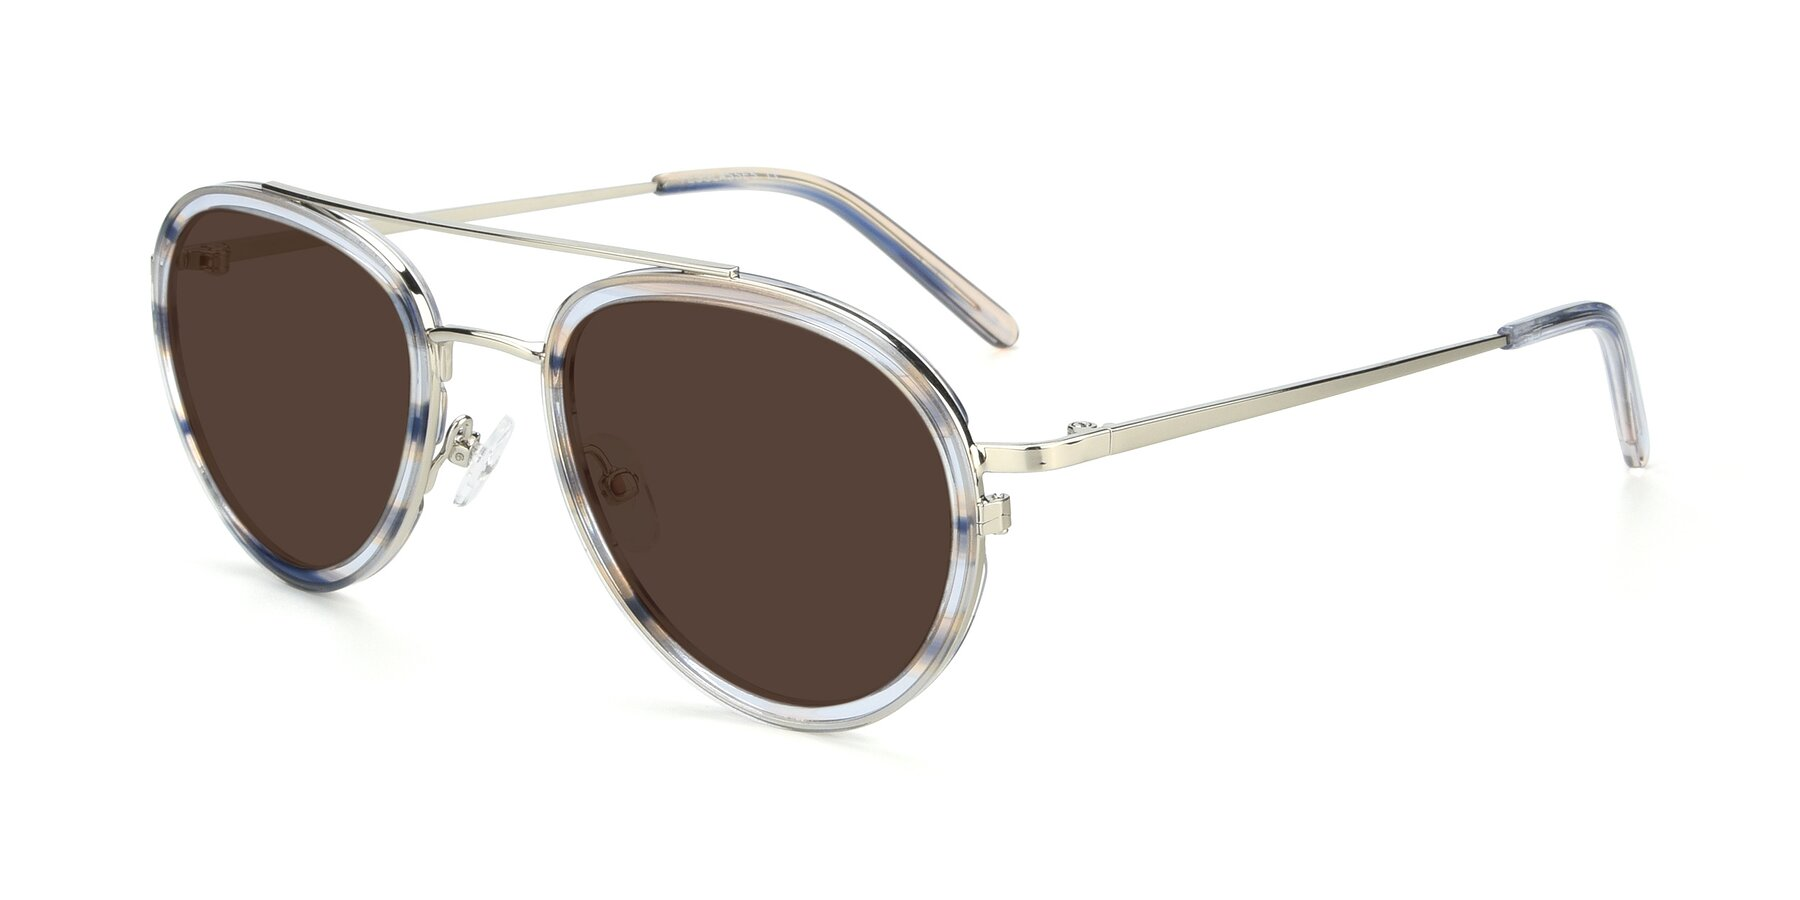 Angle of 9554 in Silver-Transparent with Brown Tinted Lenses